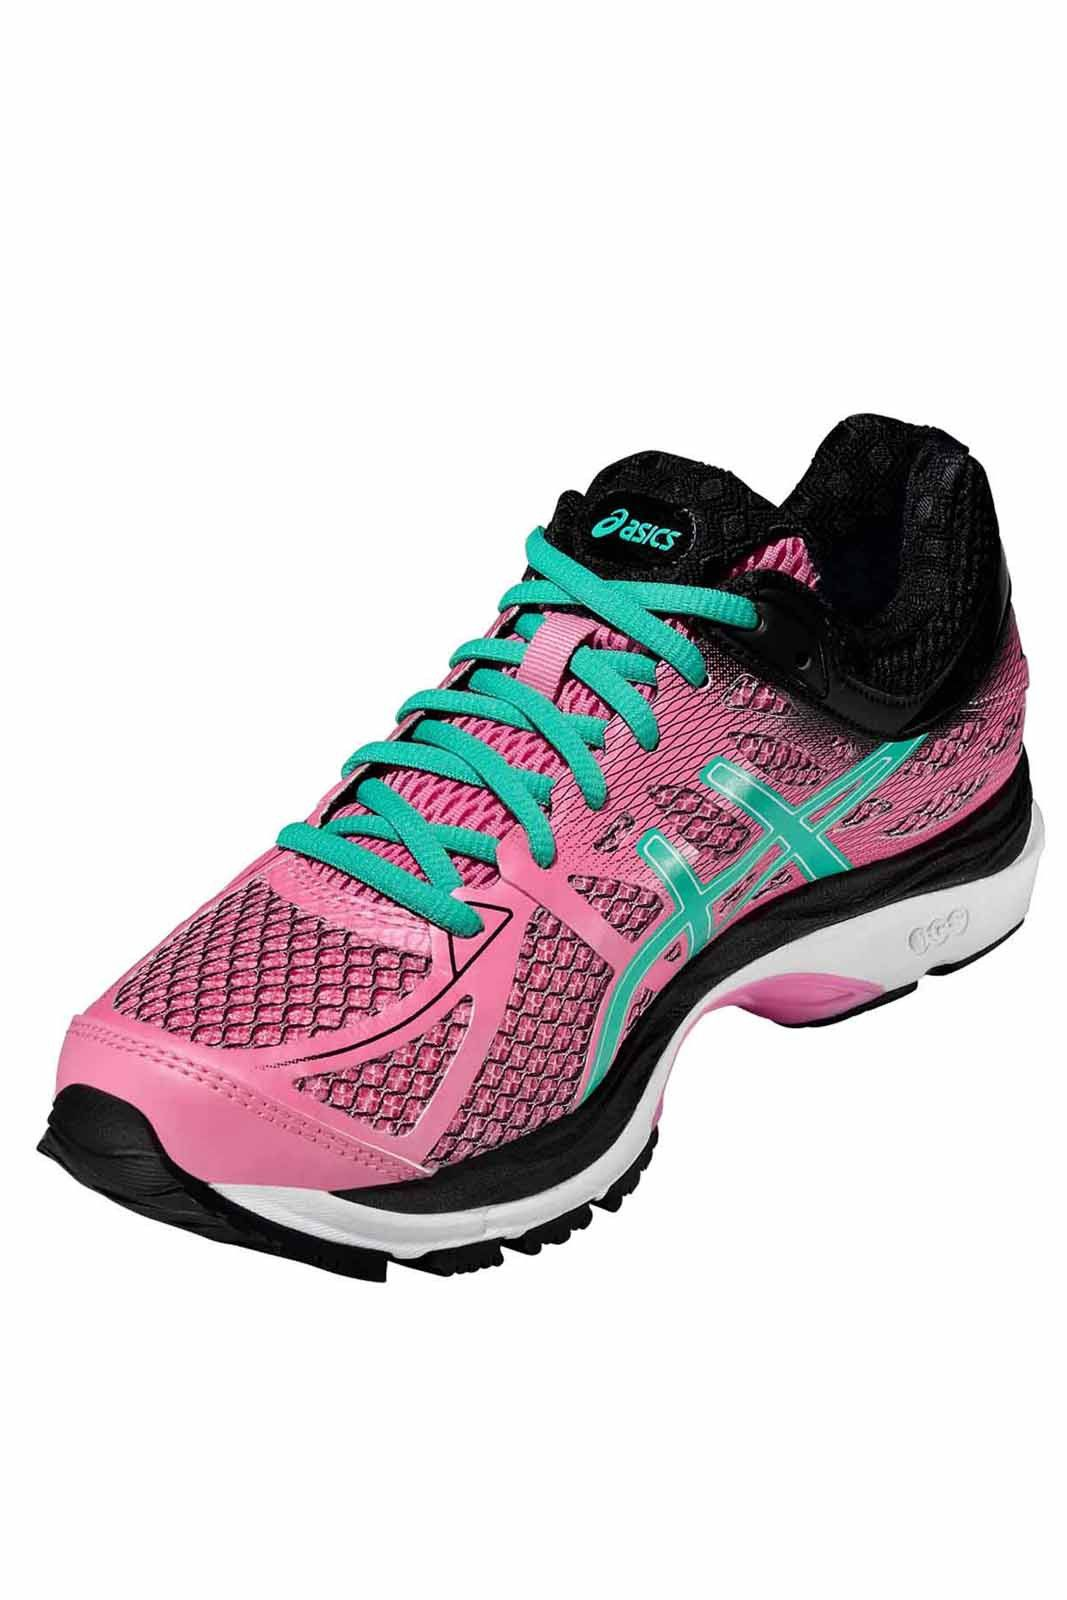 ASICS Gel Cumulus 17 W - Flamingo/Peacock image 5 - The Sports Edit